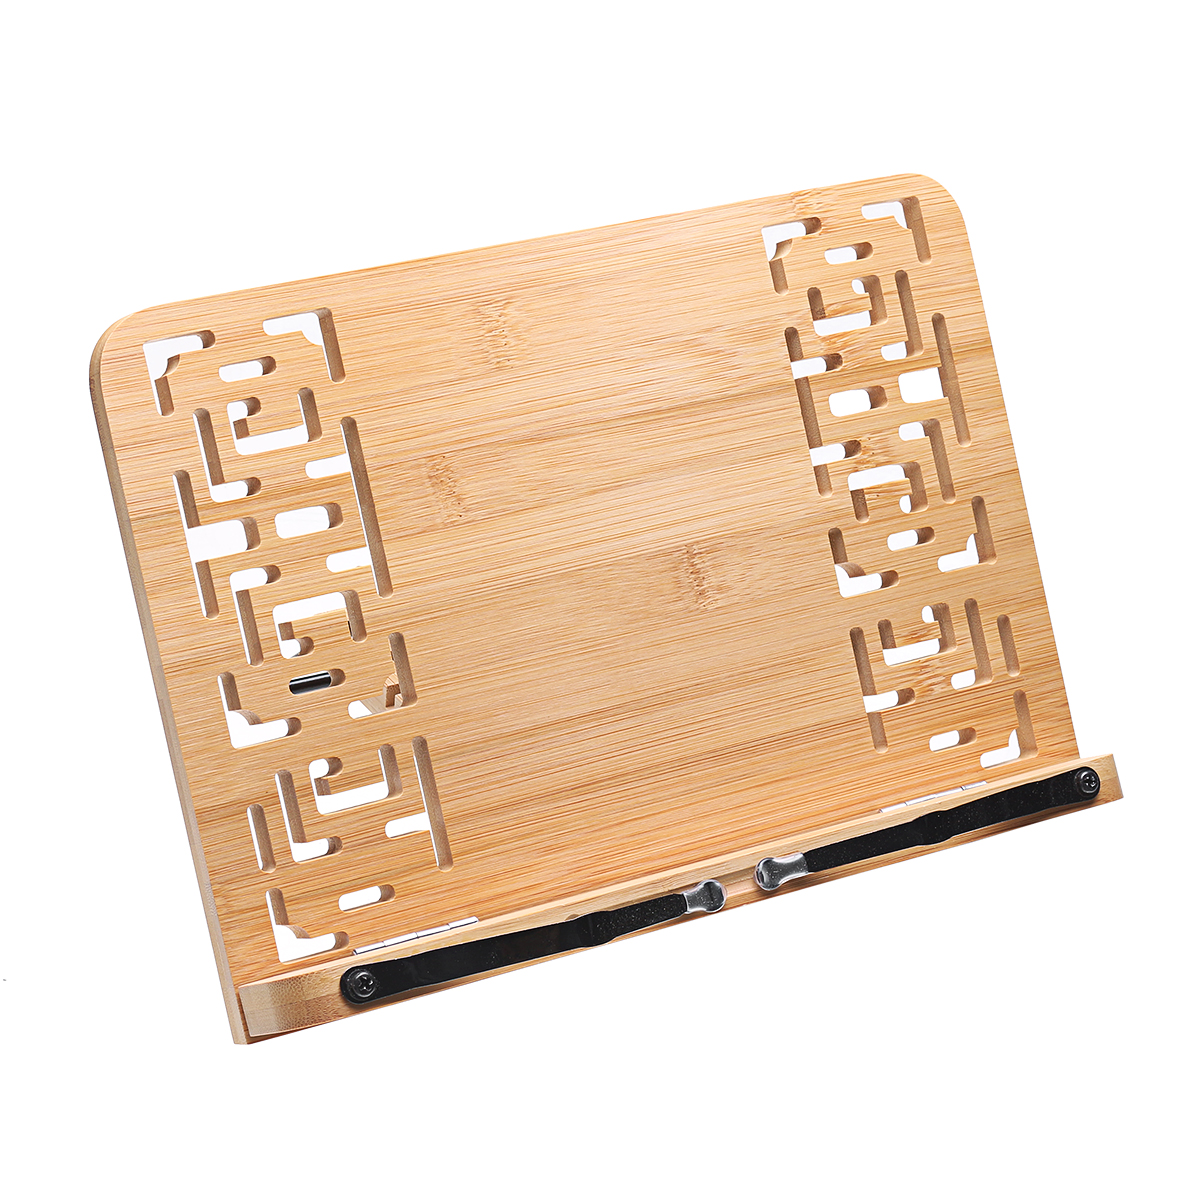 Multifunction Wood Table Stand Reading Bookshelf Bracket 28*20cm Tablet PC Pad Drawing Support Wooden Bookends Desk Organizer Stationery